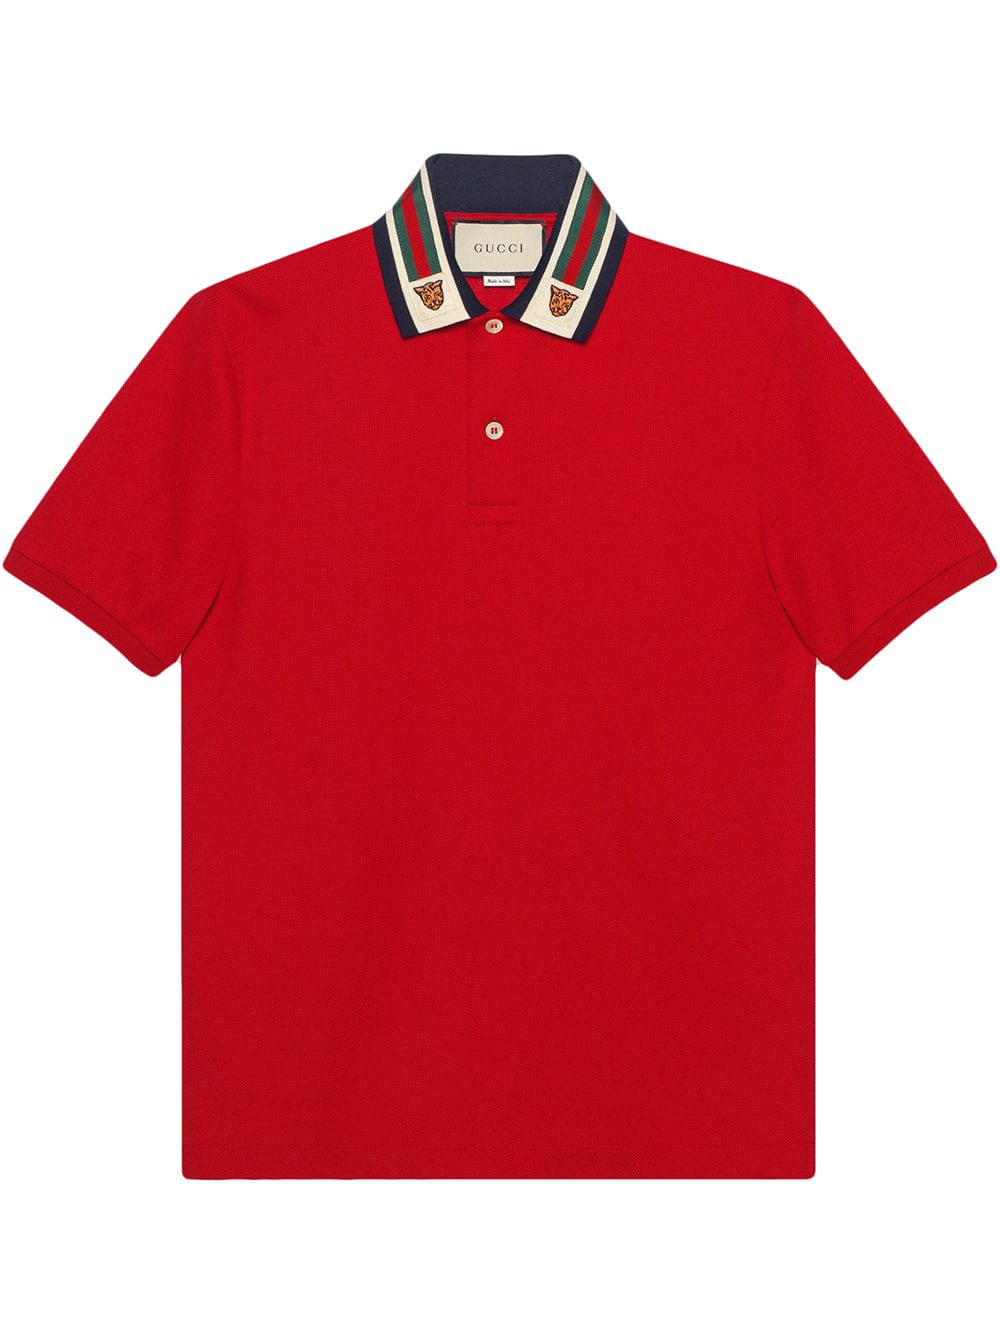 4a5568f97ce Gucci Web Polo Shirt In Red